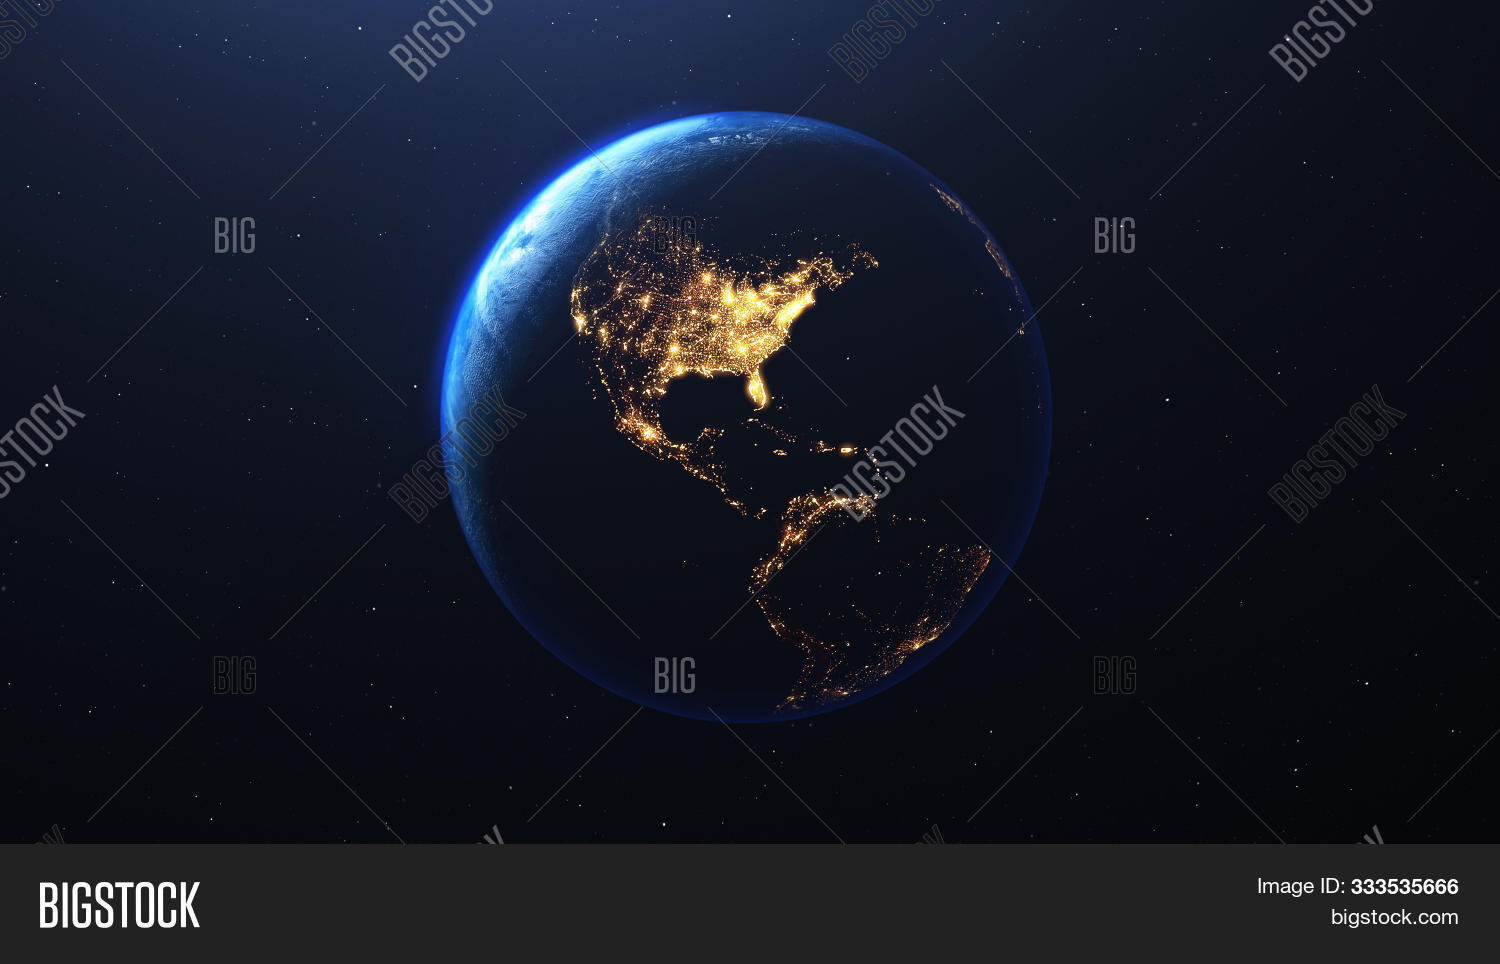 3d,america,astronomy,atmosphere,background,blue,clouds,concept,continent,cosmos,day,earth,europe,fantasy,from,galaxy,geography,global,globe,glow,graphic,horizon,illustration,interstellar,light,map,nature,nebulae,night,ocean,orbit,planet,planetary,science,sky,solar,space,sphere,star,stratosphere,sunlight,sunrise,technology,universe,view,world